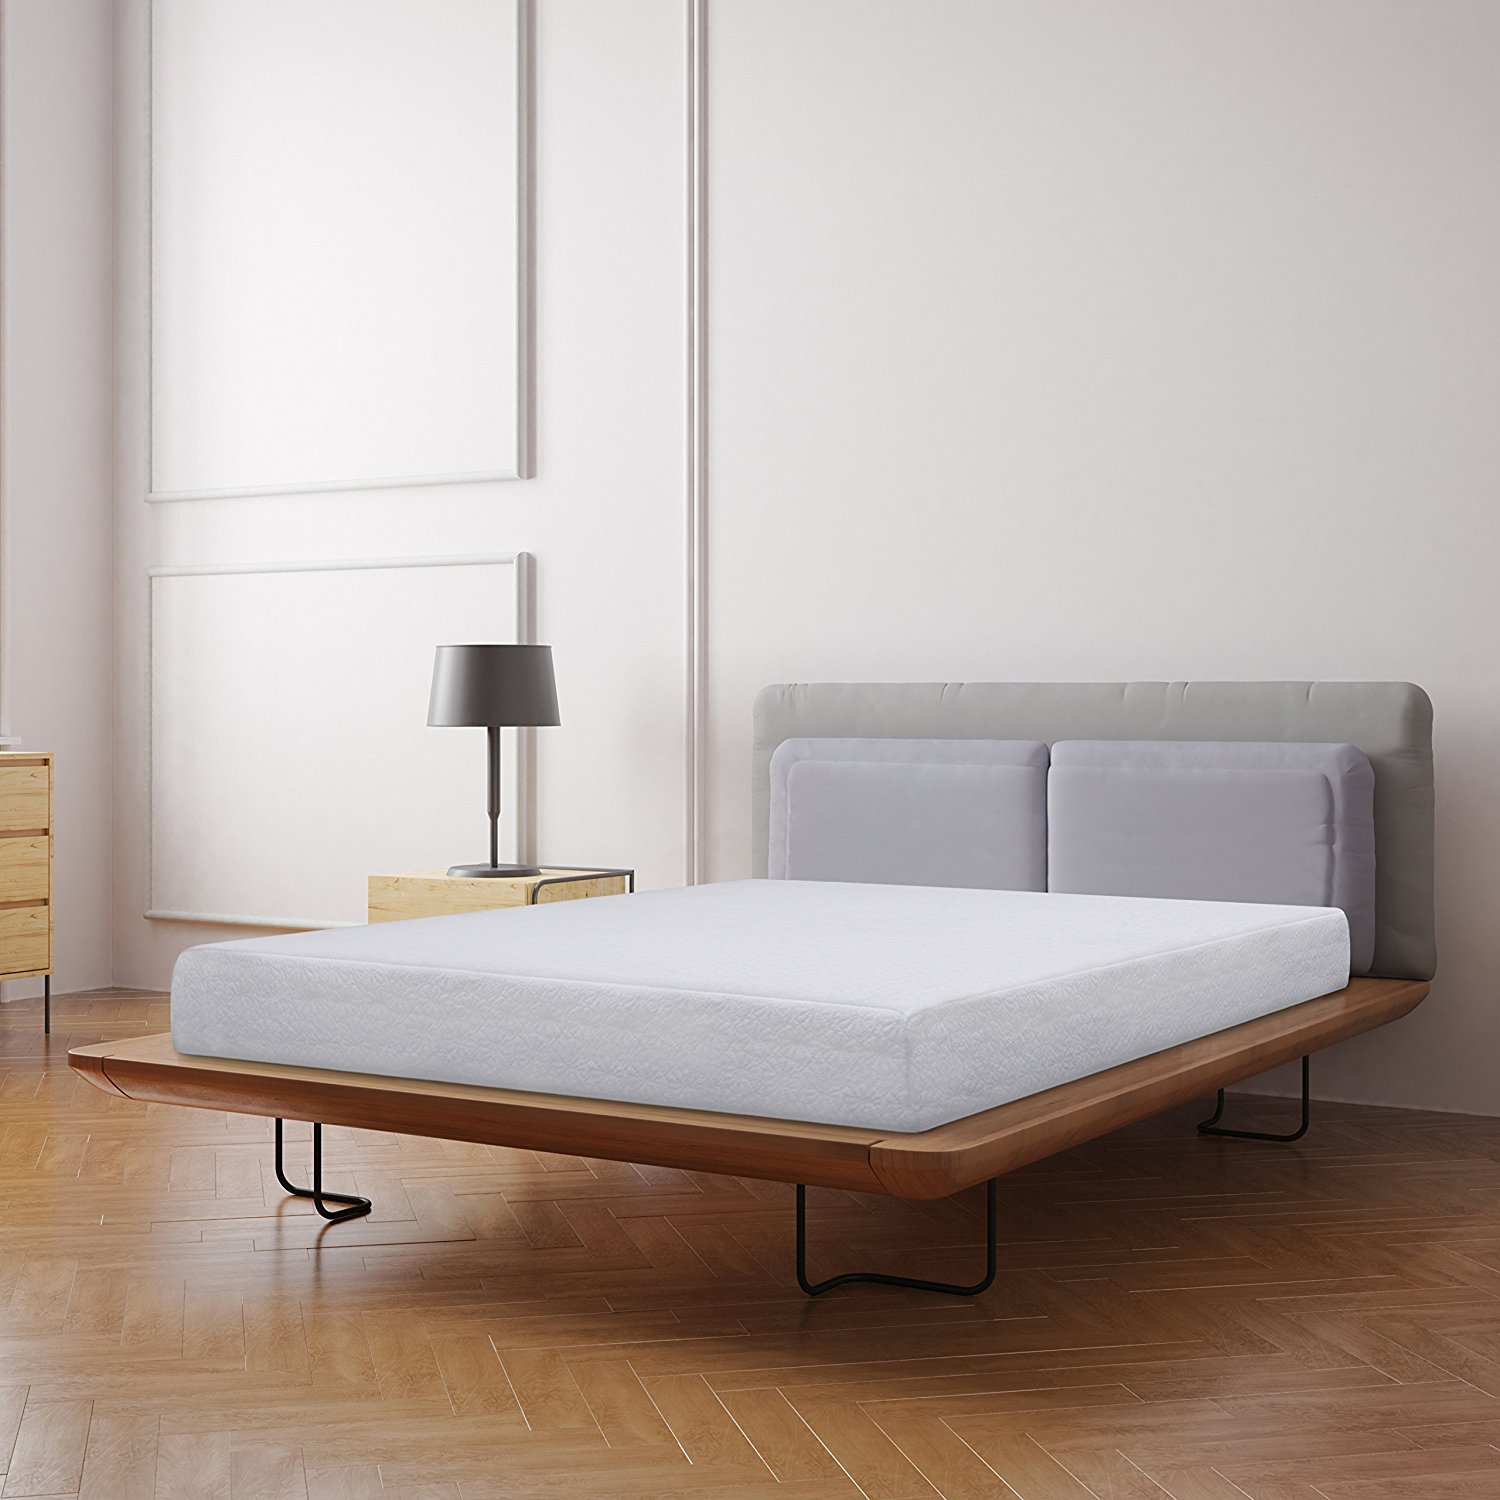 Best Price Mattress 8 Inch Memory Foam Mattress In a Box Multiple Sizes by Best Price Mattress